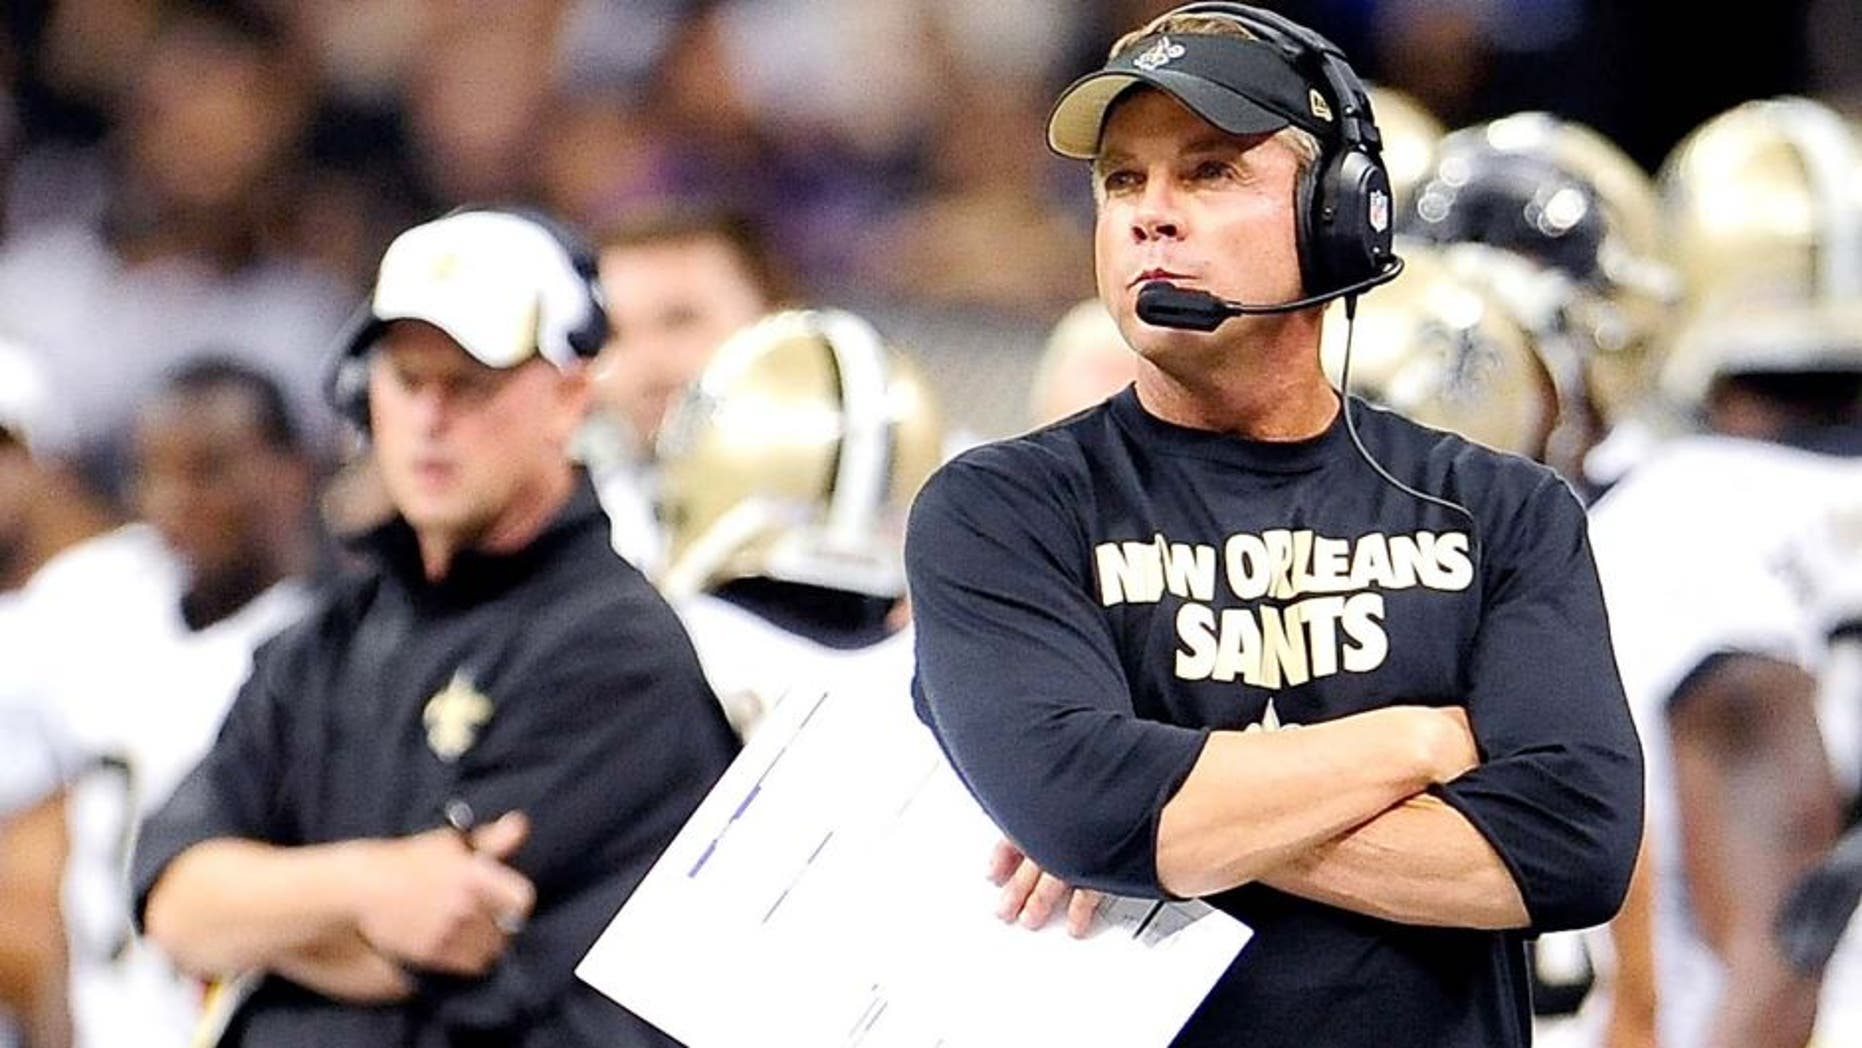 NEW ORLEANS, LA - AUGUST 09: Sean Payton, head coach of the New Orleans Saints, watches action during a game against the Kansas City Chiefs at the Mercedes-Benz Superdome on August 9, 2013 in New Orleans, Louisiana. The Saints won 17-13. (Photo by Stacy Revere/Getty Images)